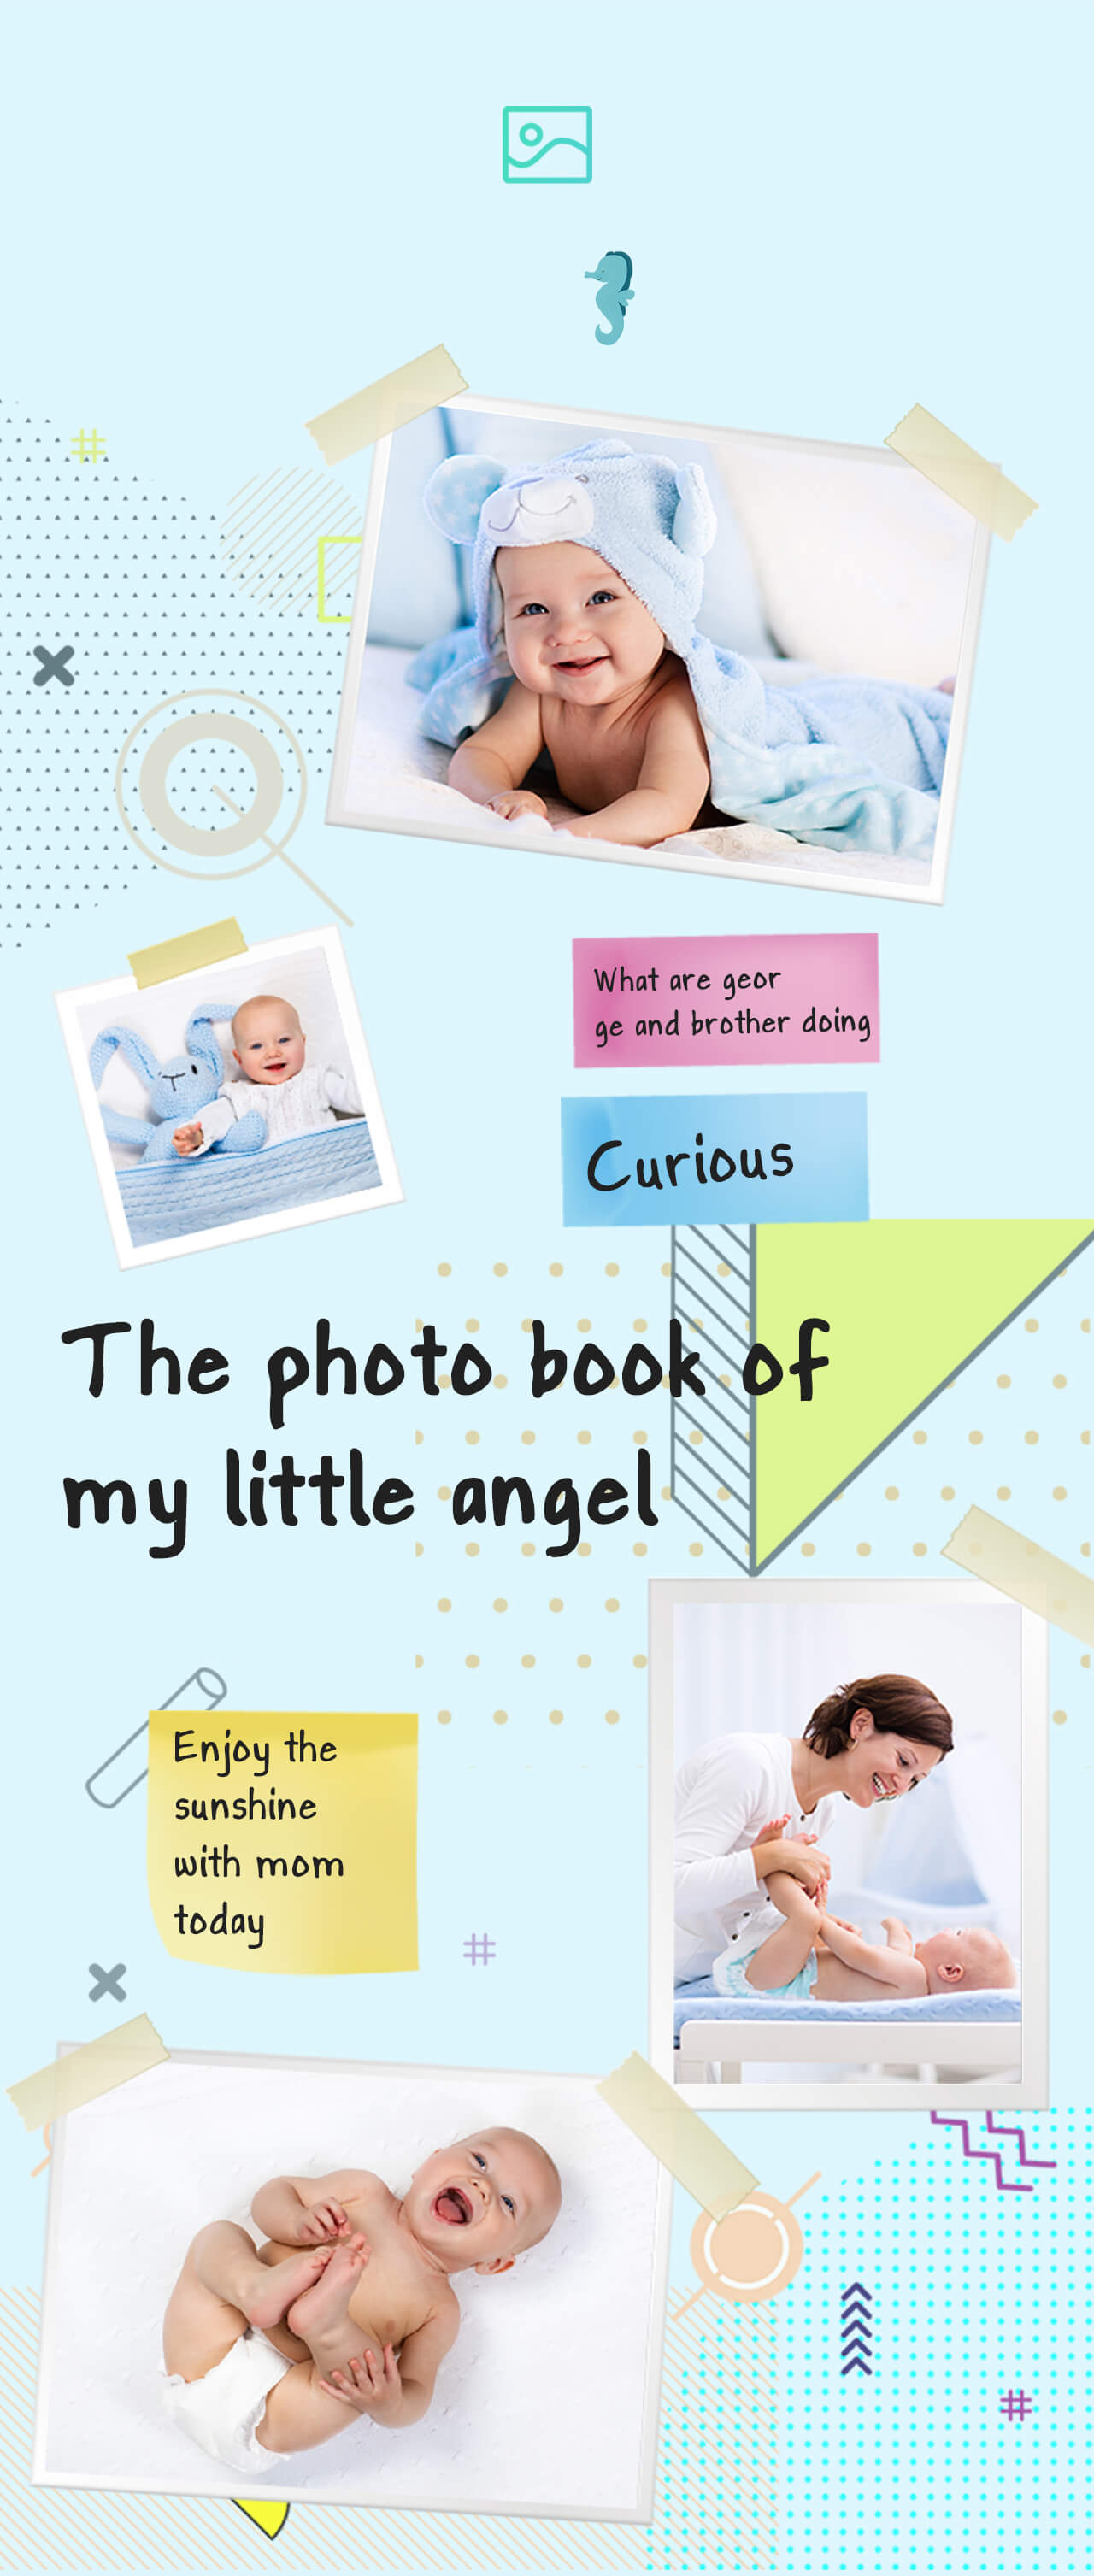 SimCam Baby automatically takes a snapshot upon detecting your baby's face